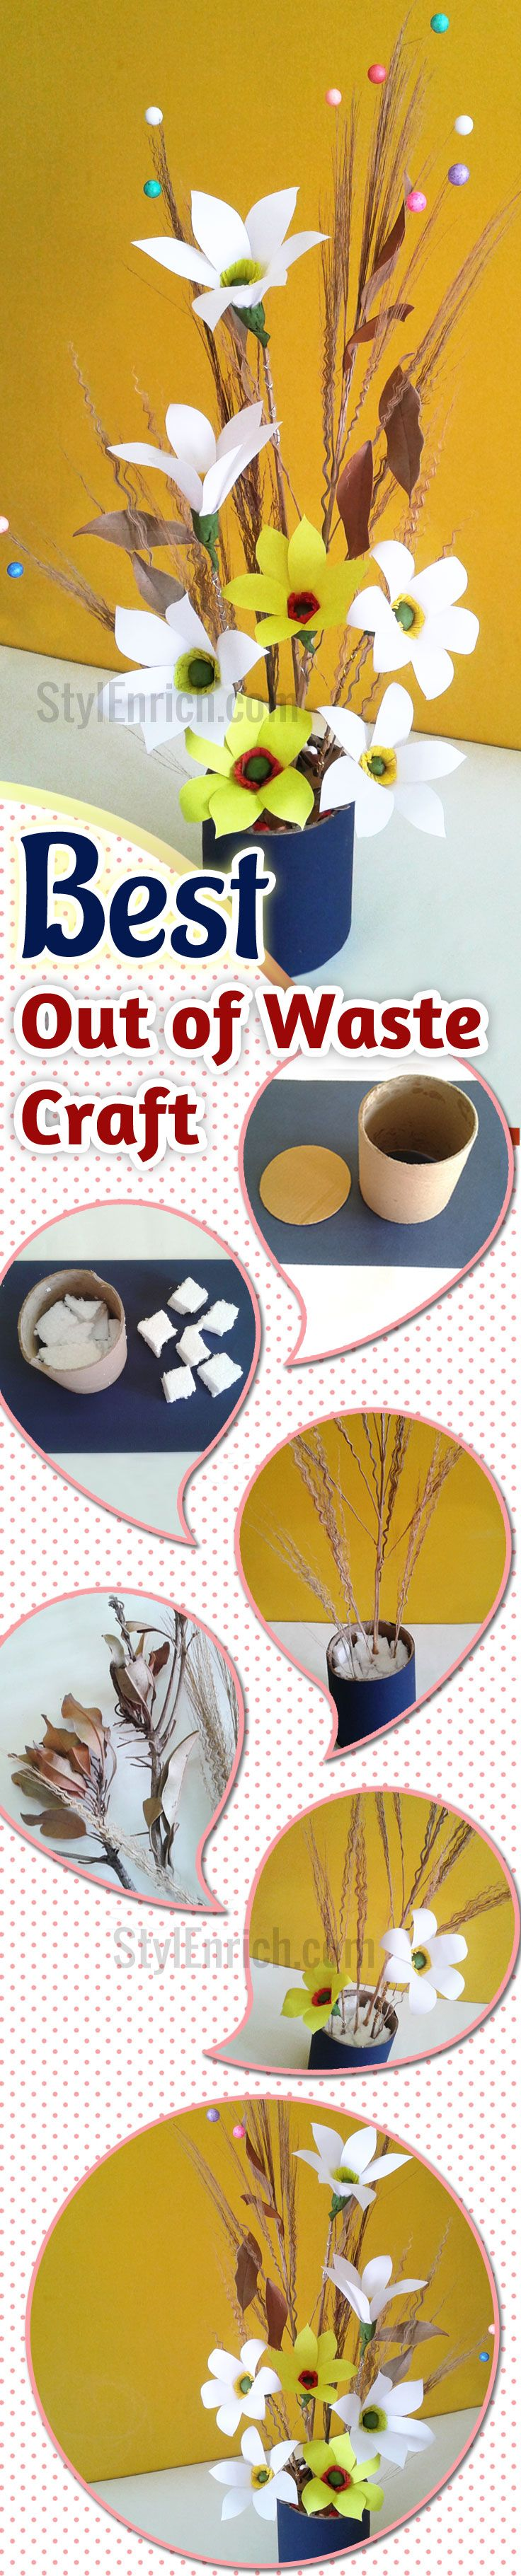 49 best images about best out of waste on pinterest for Best out of waste pictures